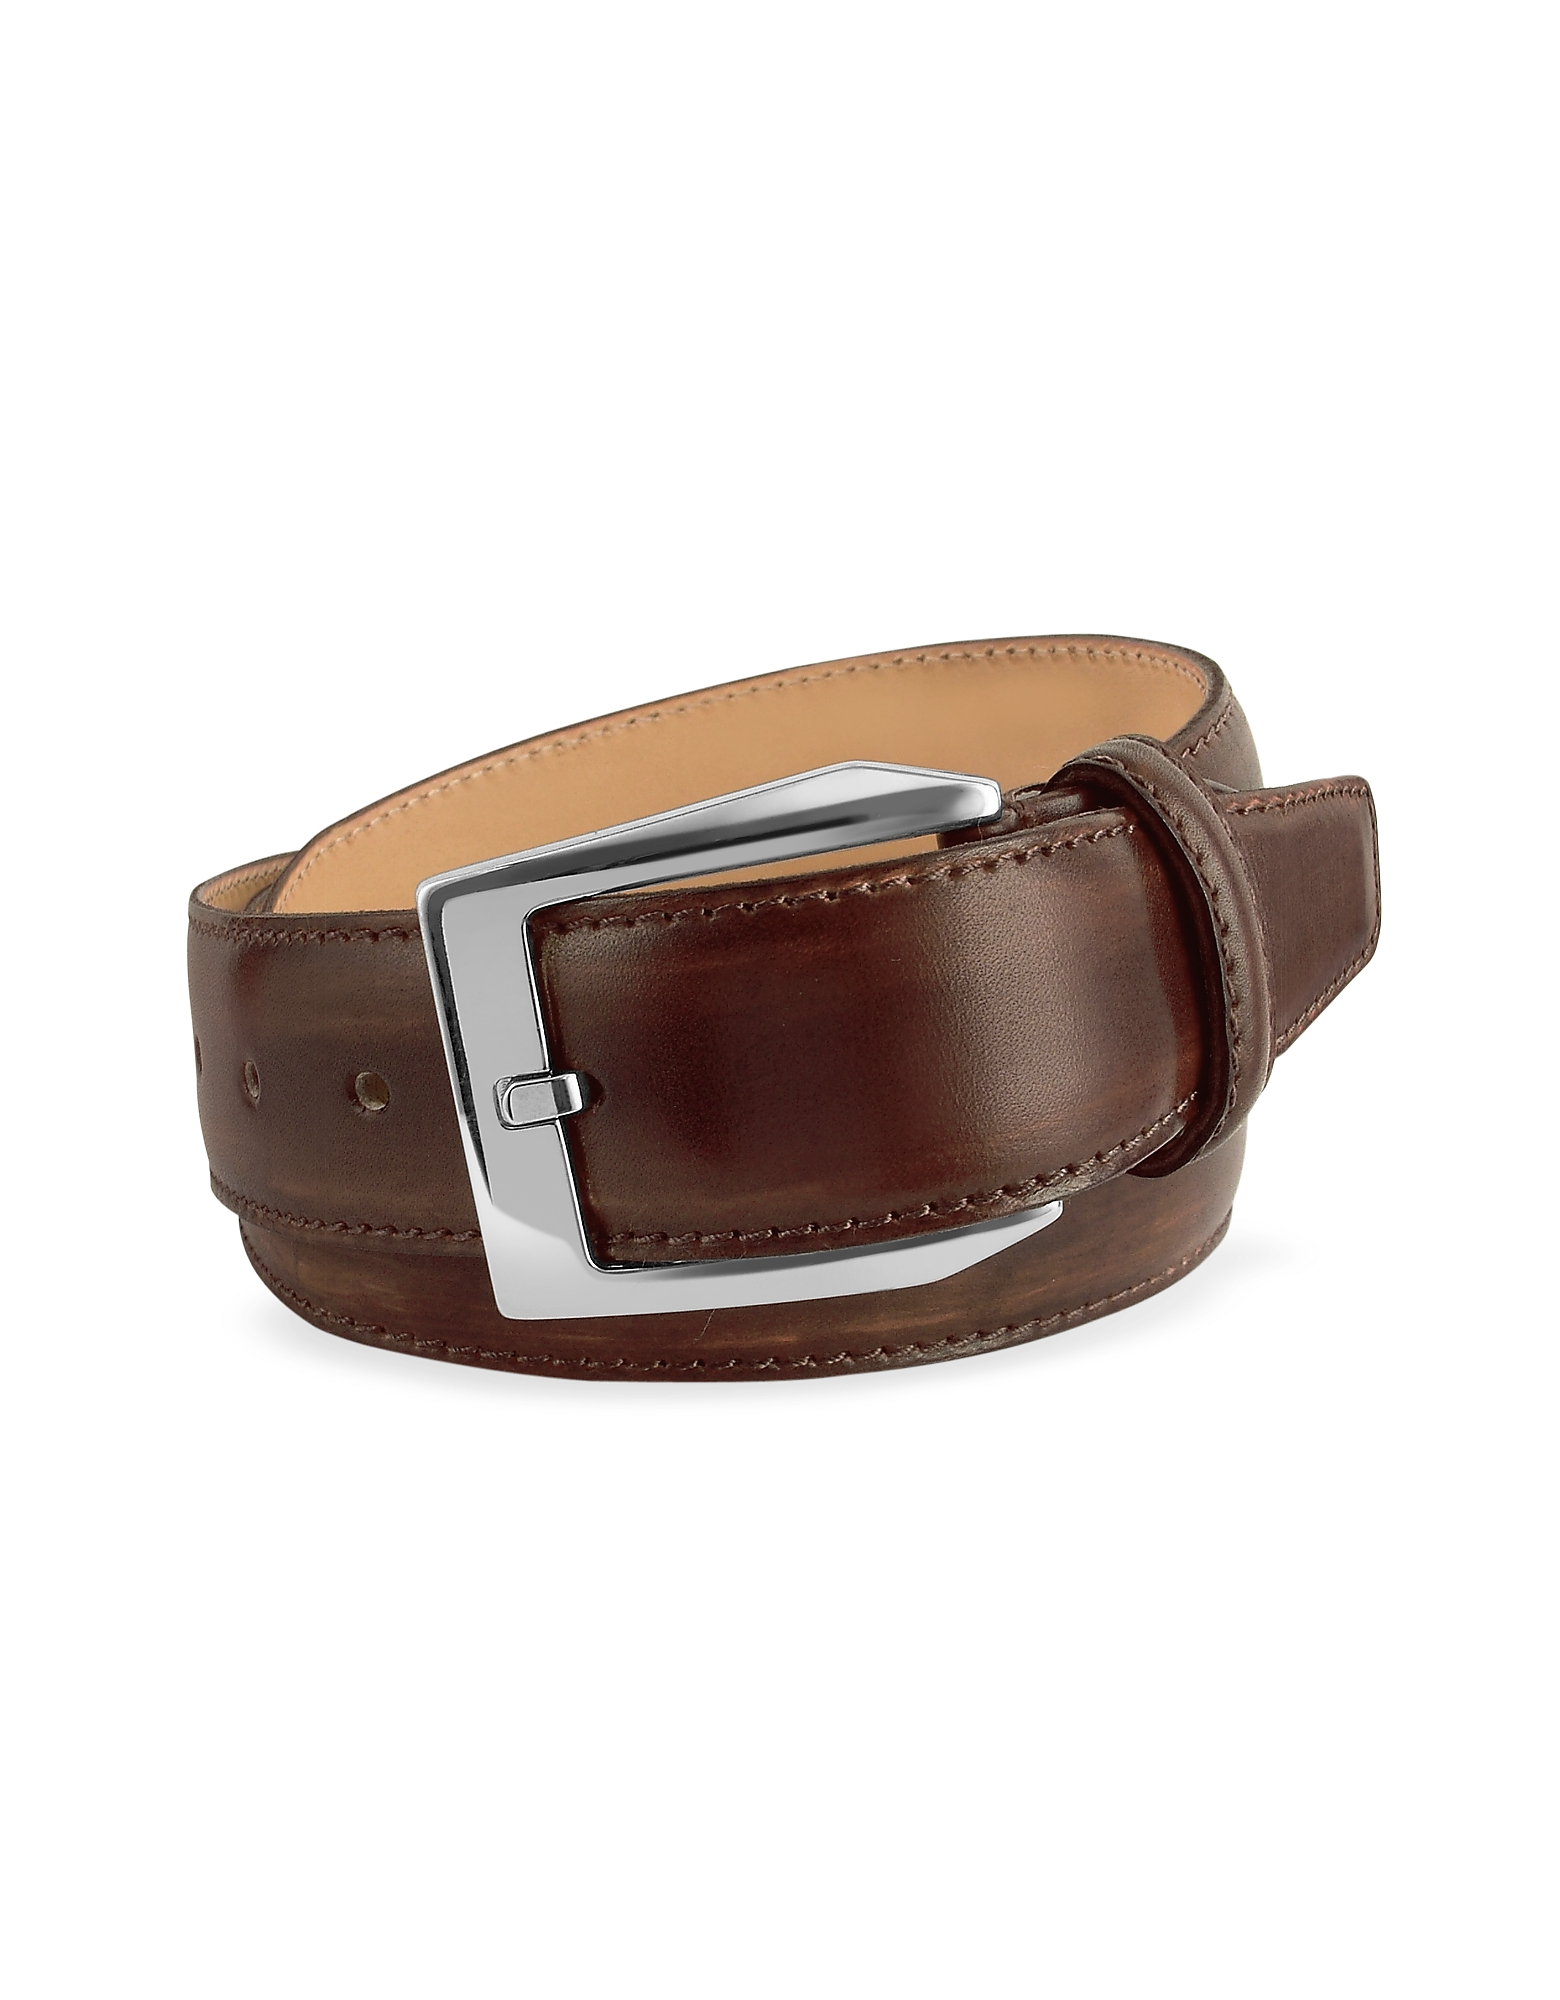 Pakerson Men's Belts, Men's Coffee Brown Hand Painted Italian Leather Belt